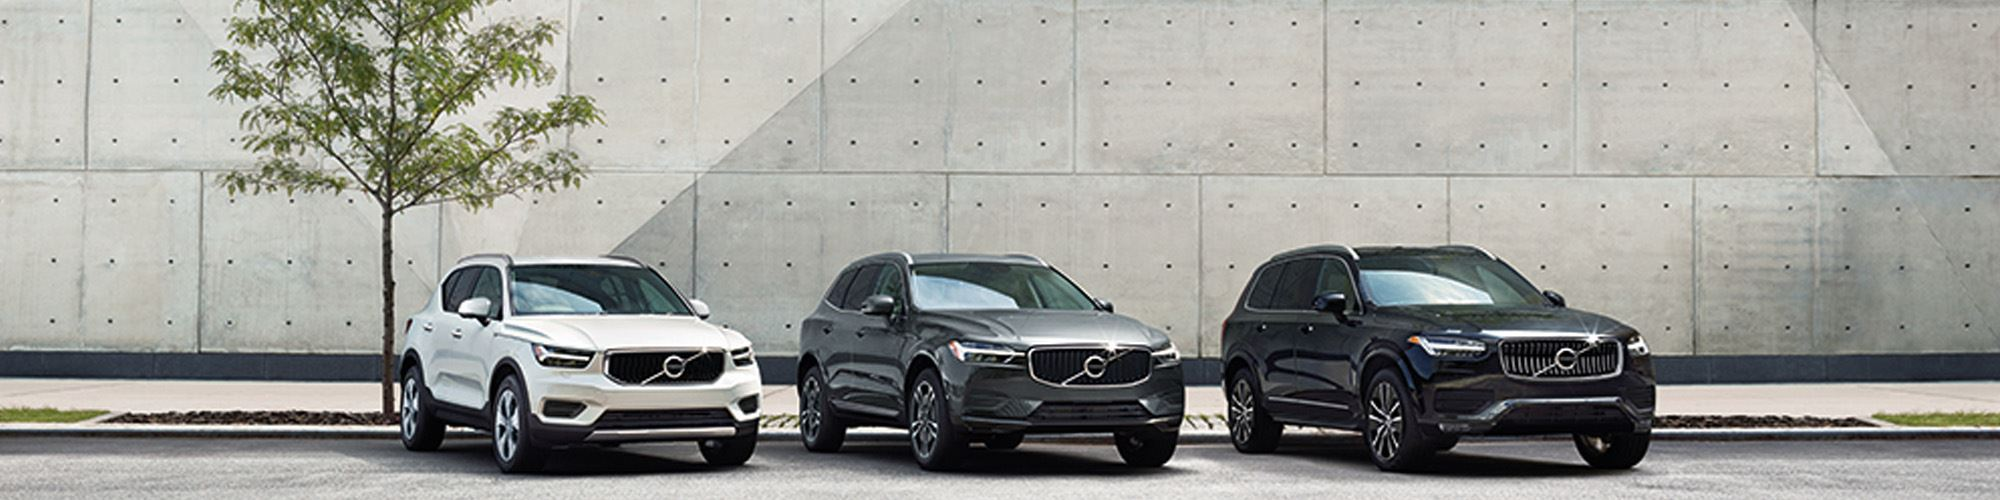 THE VOLVO SUV RANGE